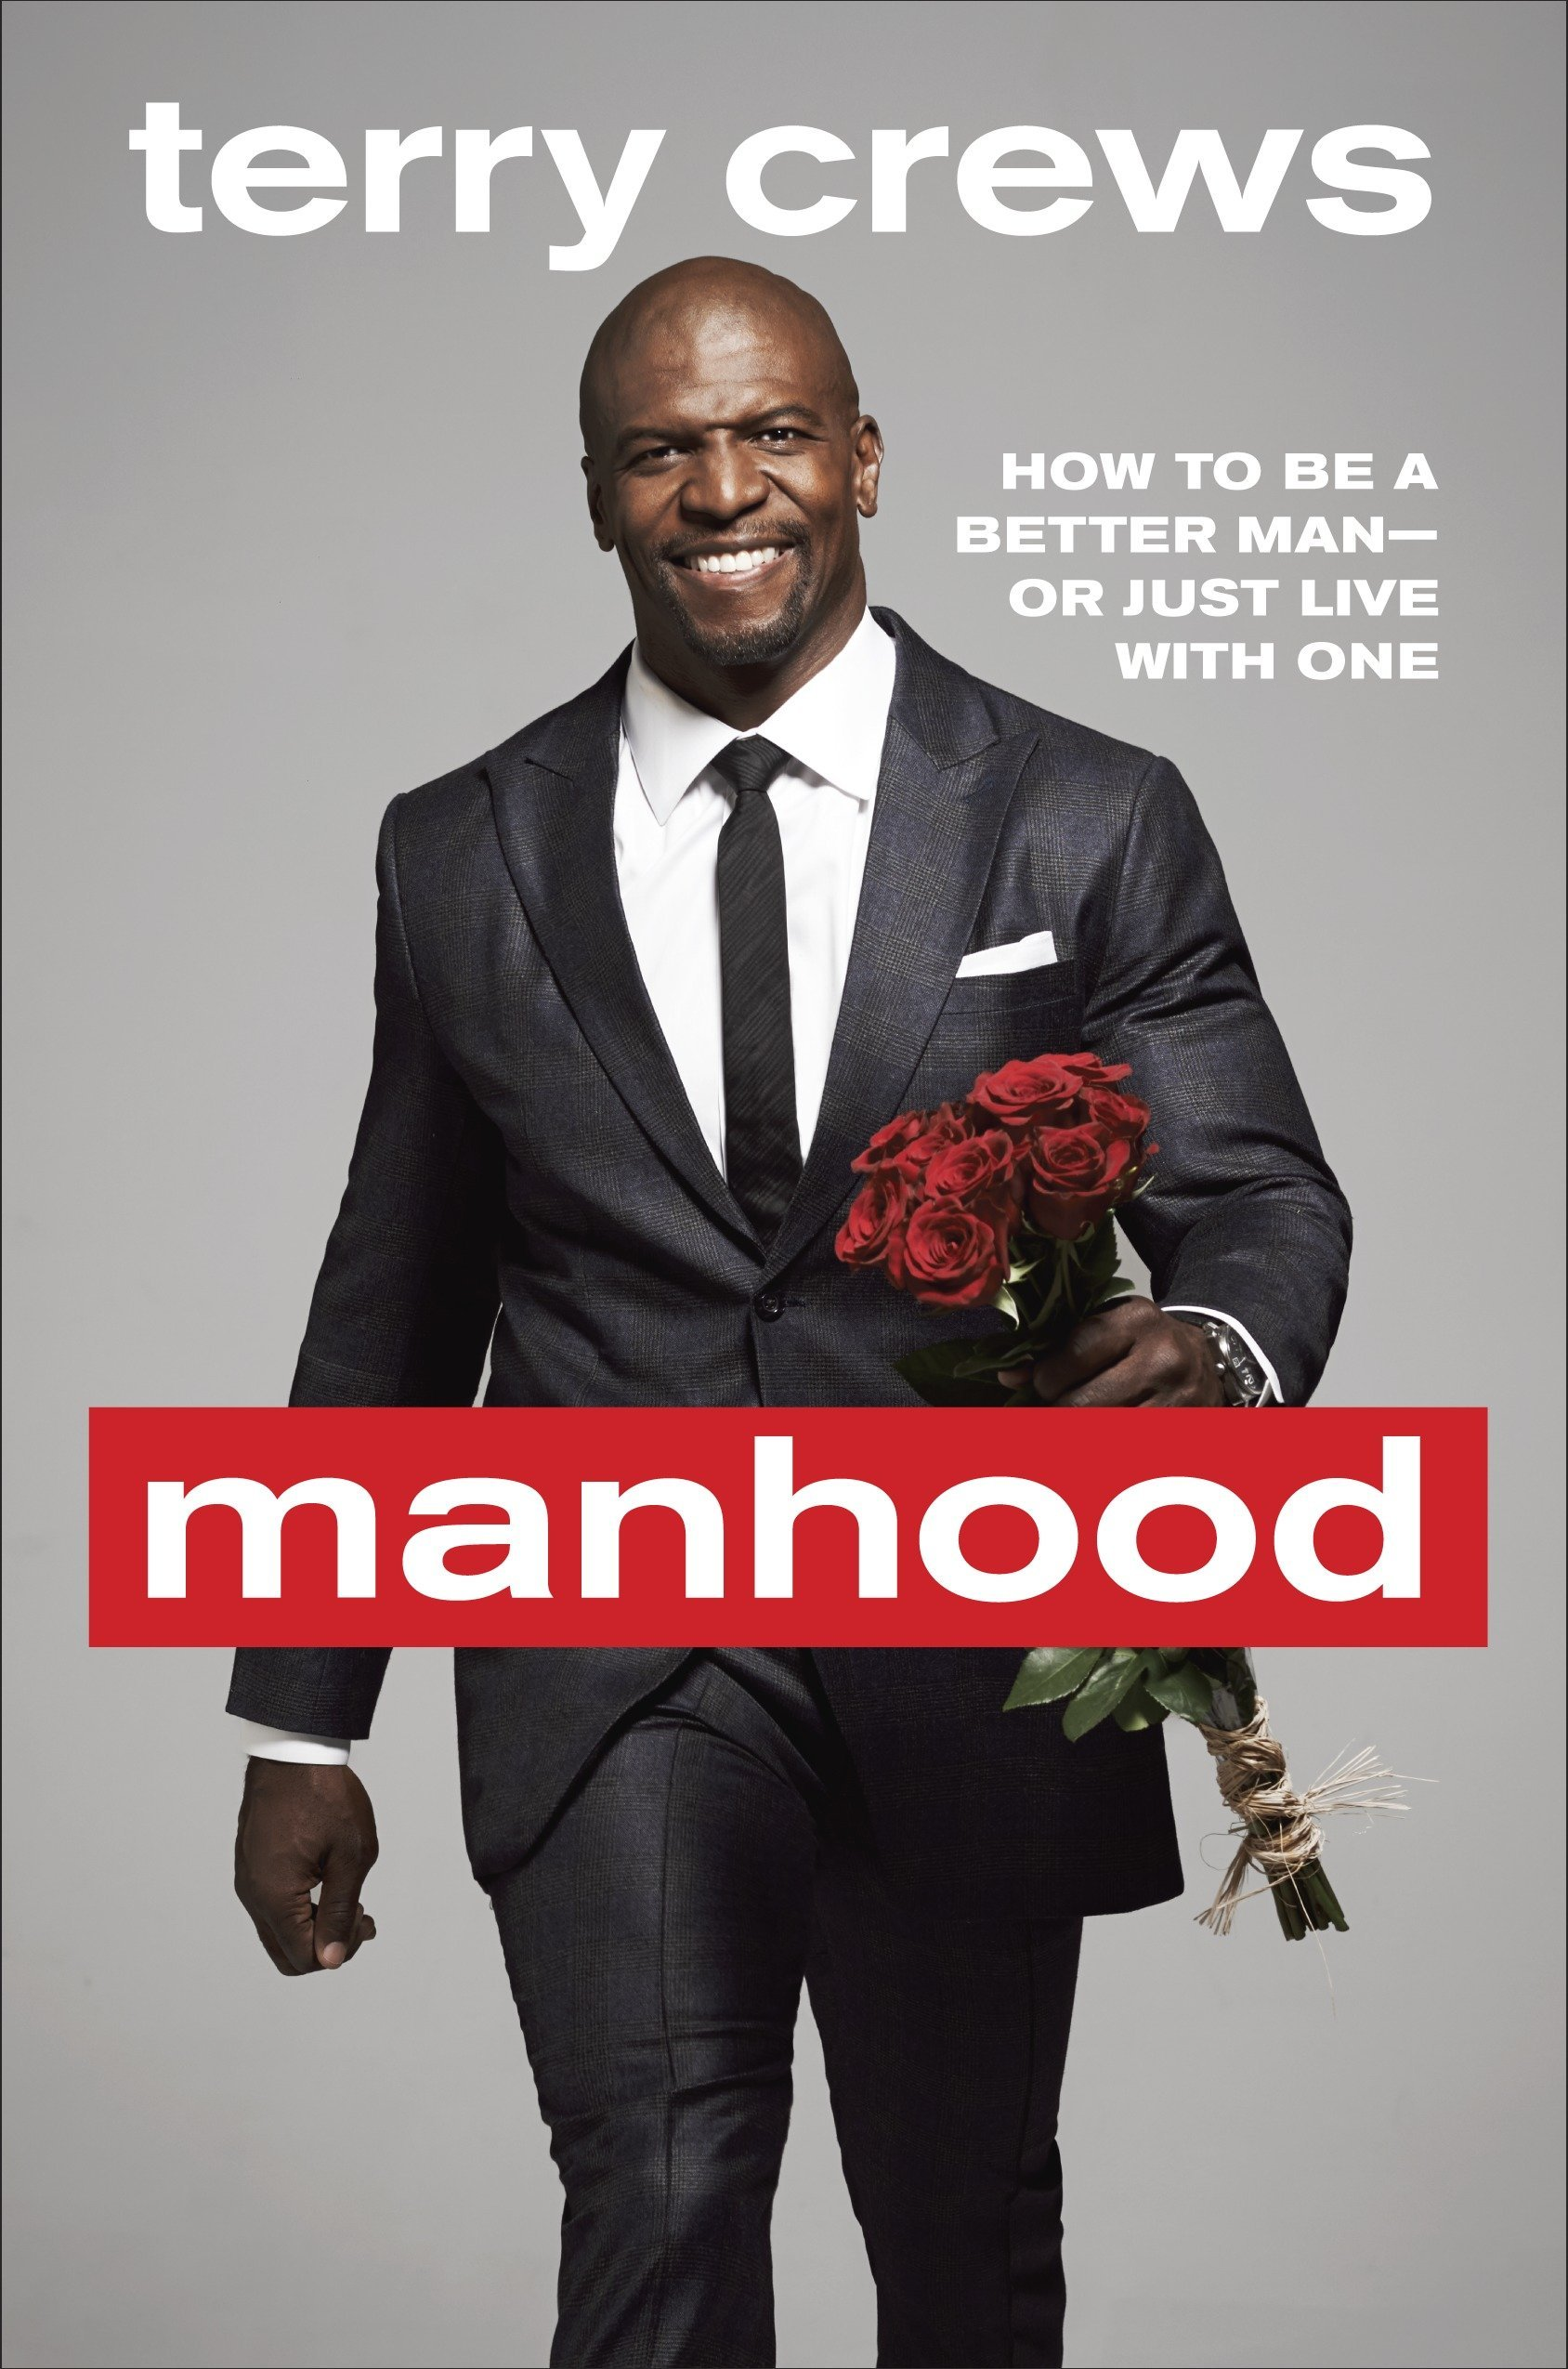 info for 95c58 d7831 Manhood: How to Be a Better Man-or Just Live with One: Terry ...